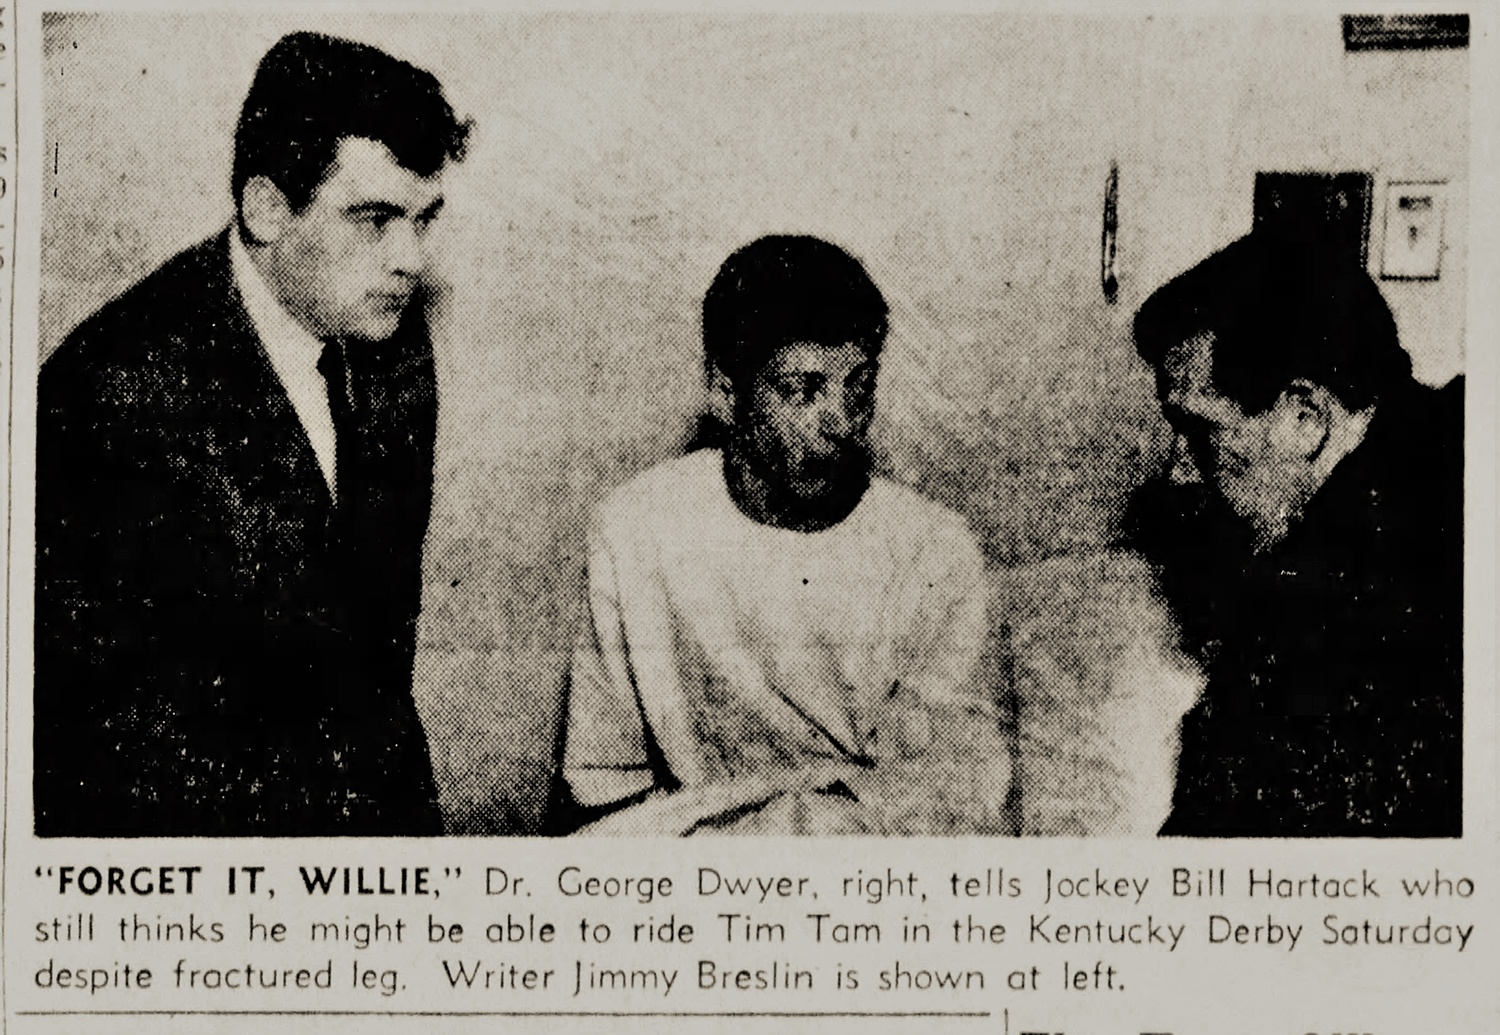 """Forget it Willie."" Medical experts all agreed that Hartack would not be able to ride in the Kentucky Derby a week later after breaking his leg in April 1958. From The Pittsburgh Press, Monday, April 28, 1958."